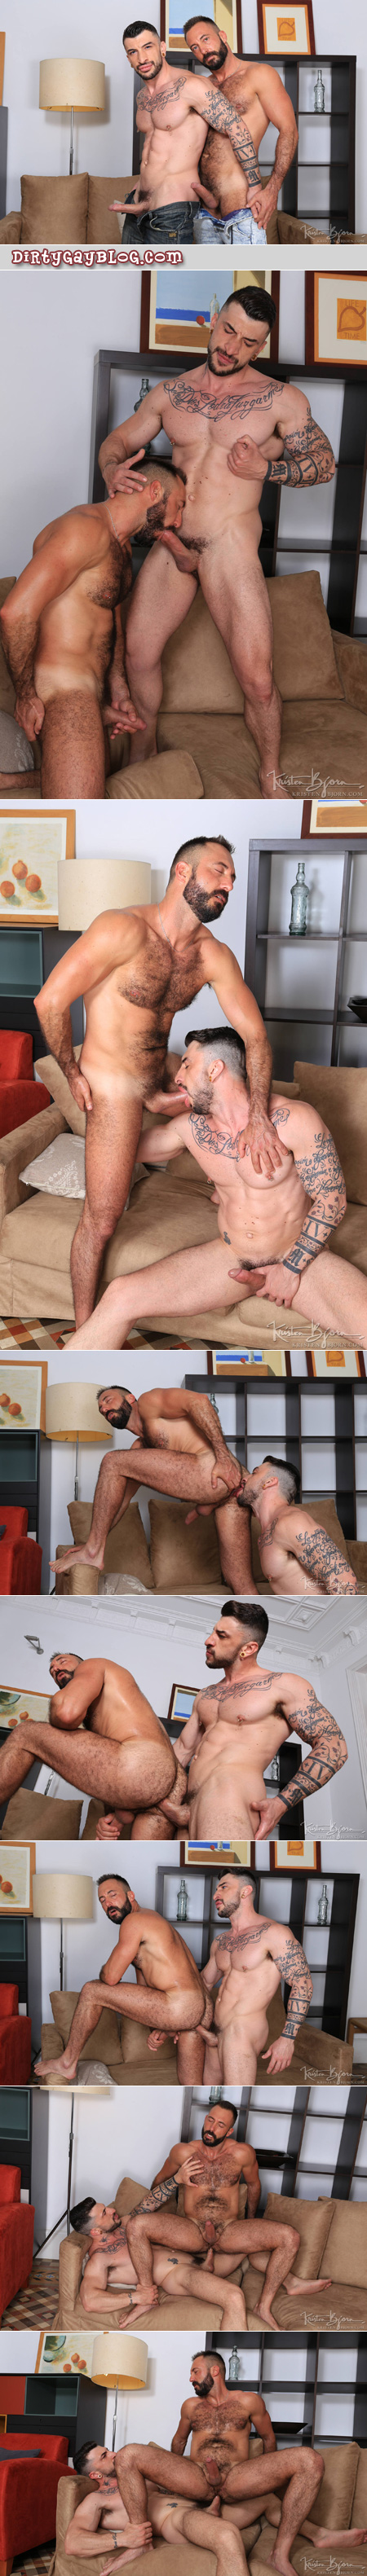 Hairy Daddy being fucked bareback by a tattooed muscle hunk.